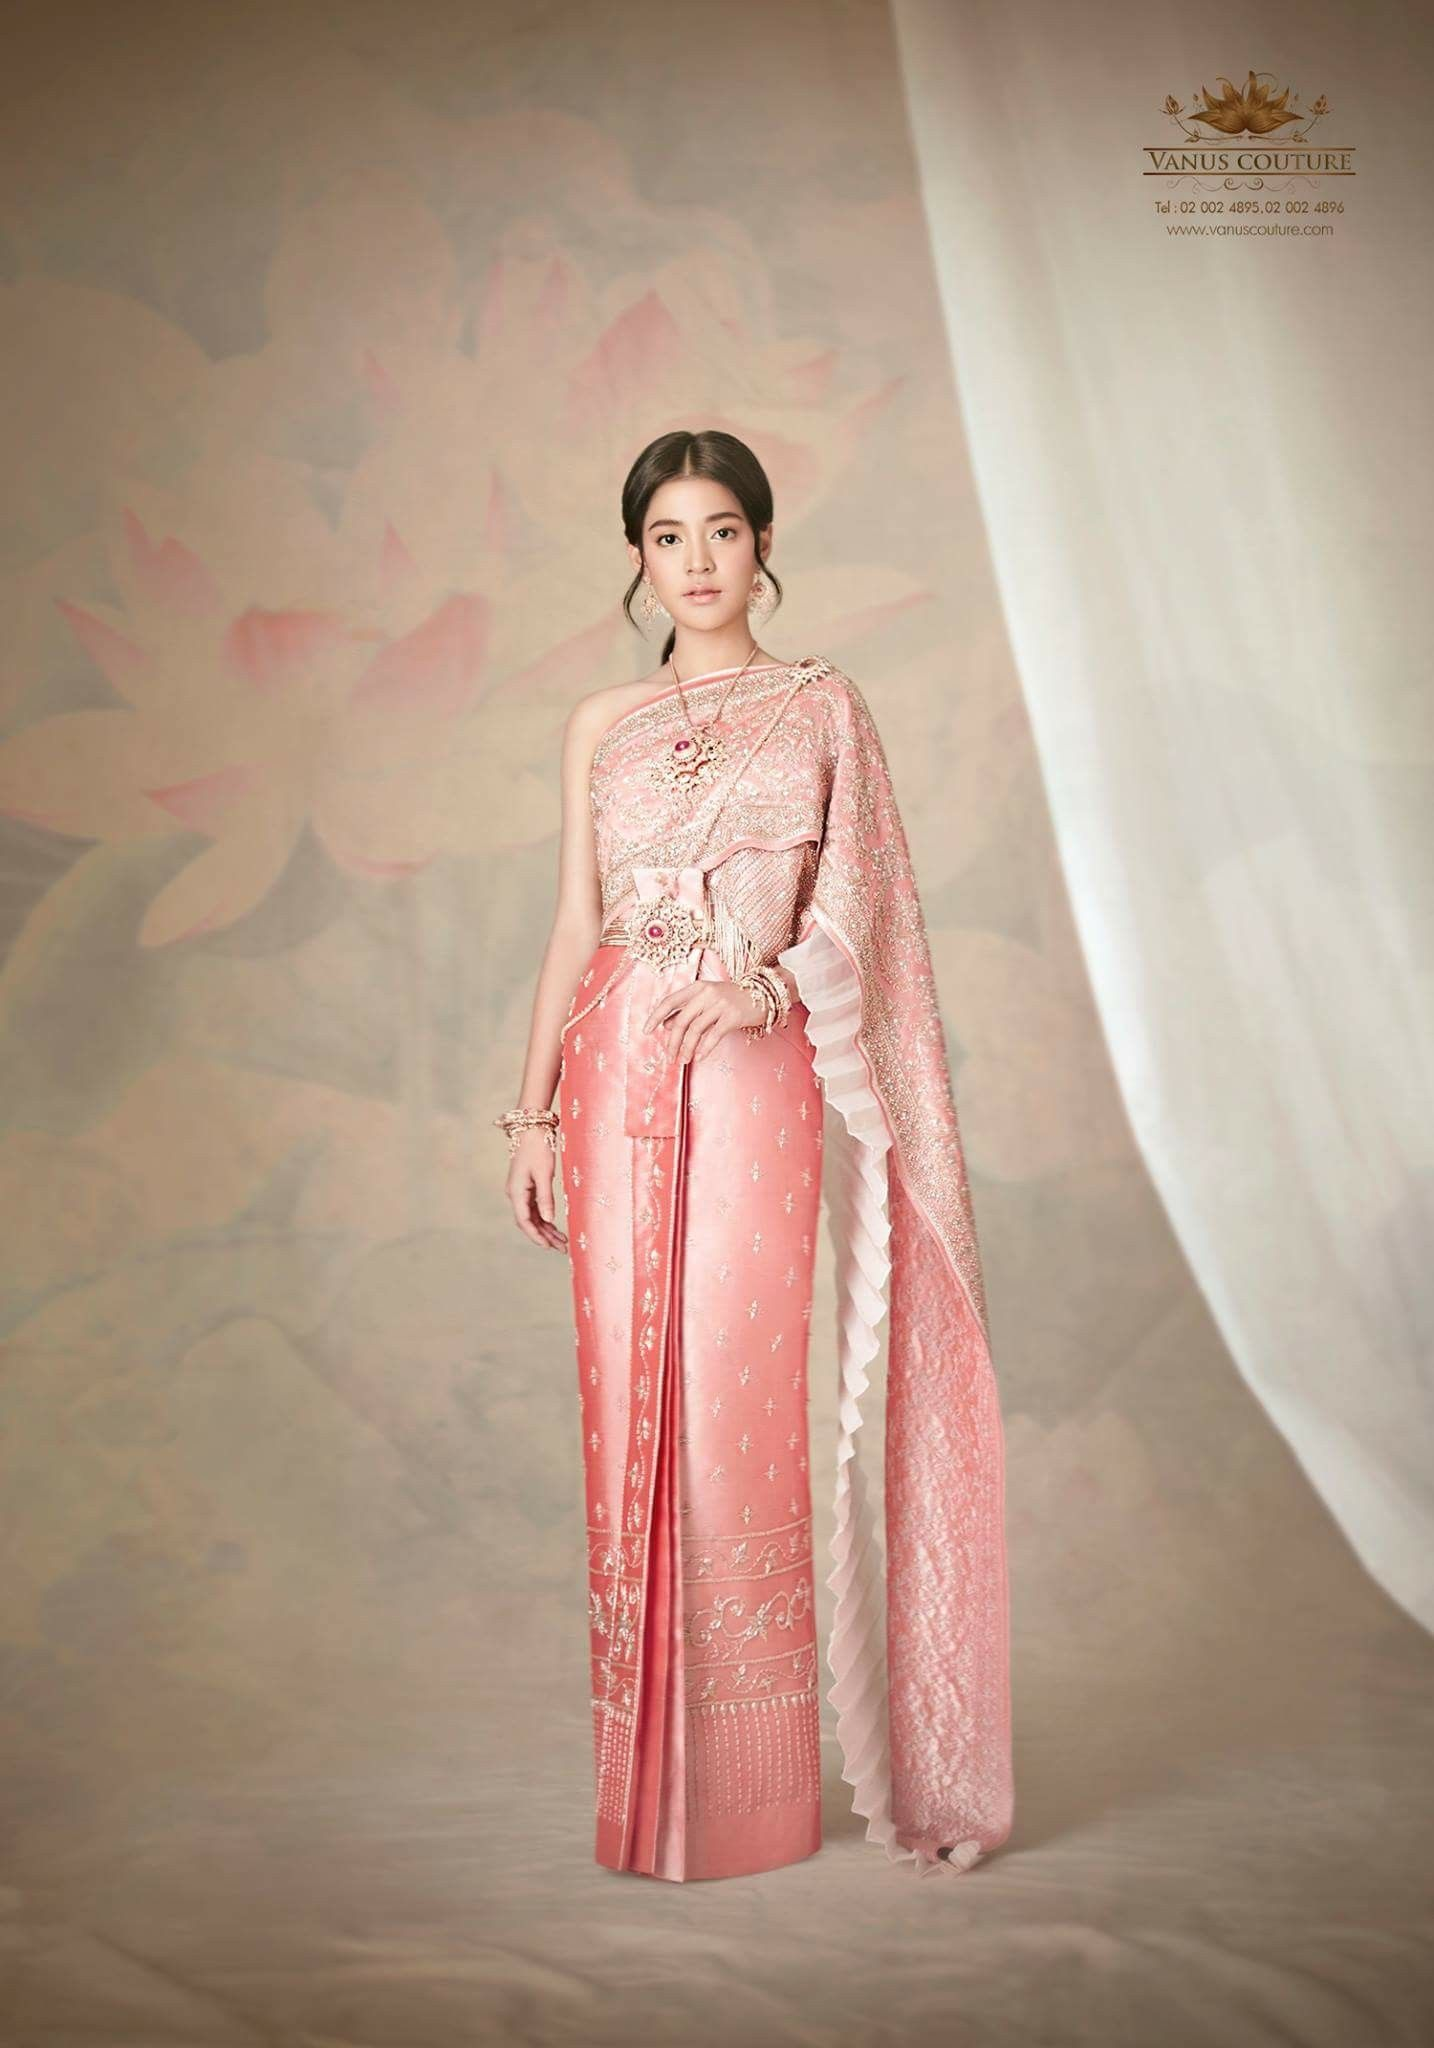 Pin de Sini Bal en Thai wedding | Pinterest